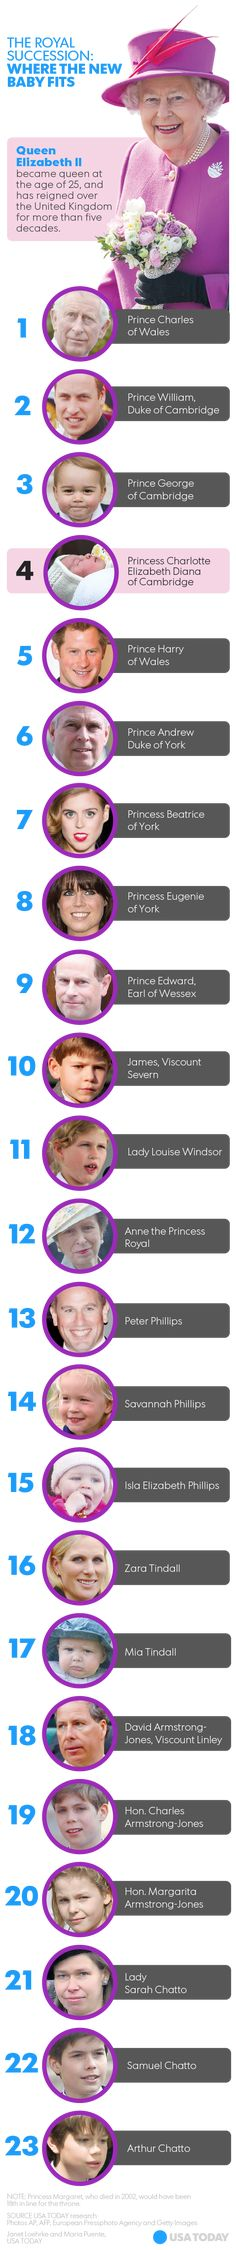 usatoday:  Royal Succession Chart-1-23 in line to the throne, including Princess Charlotte